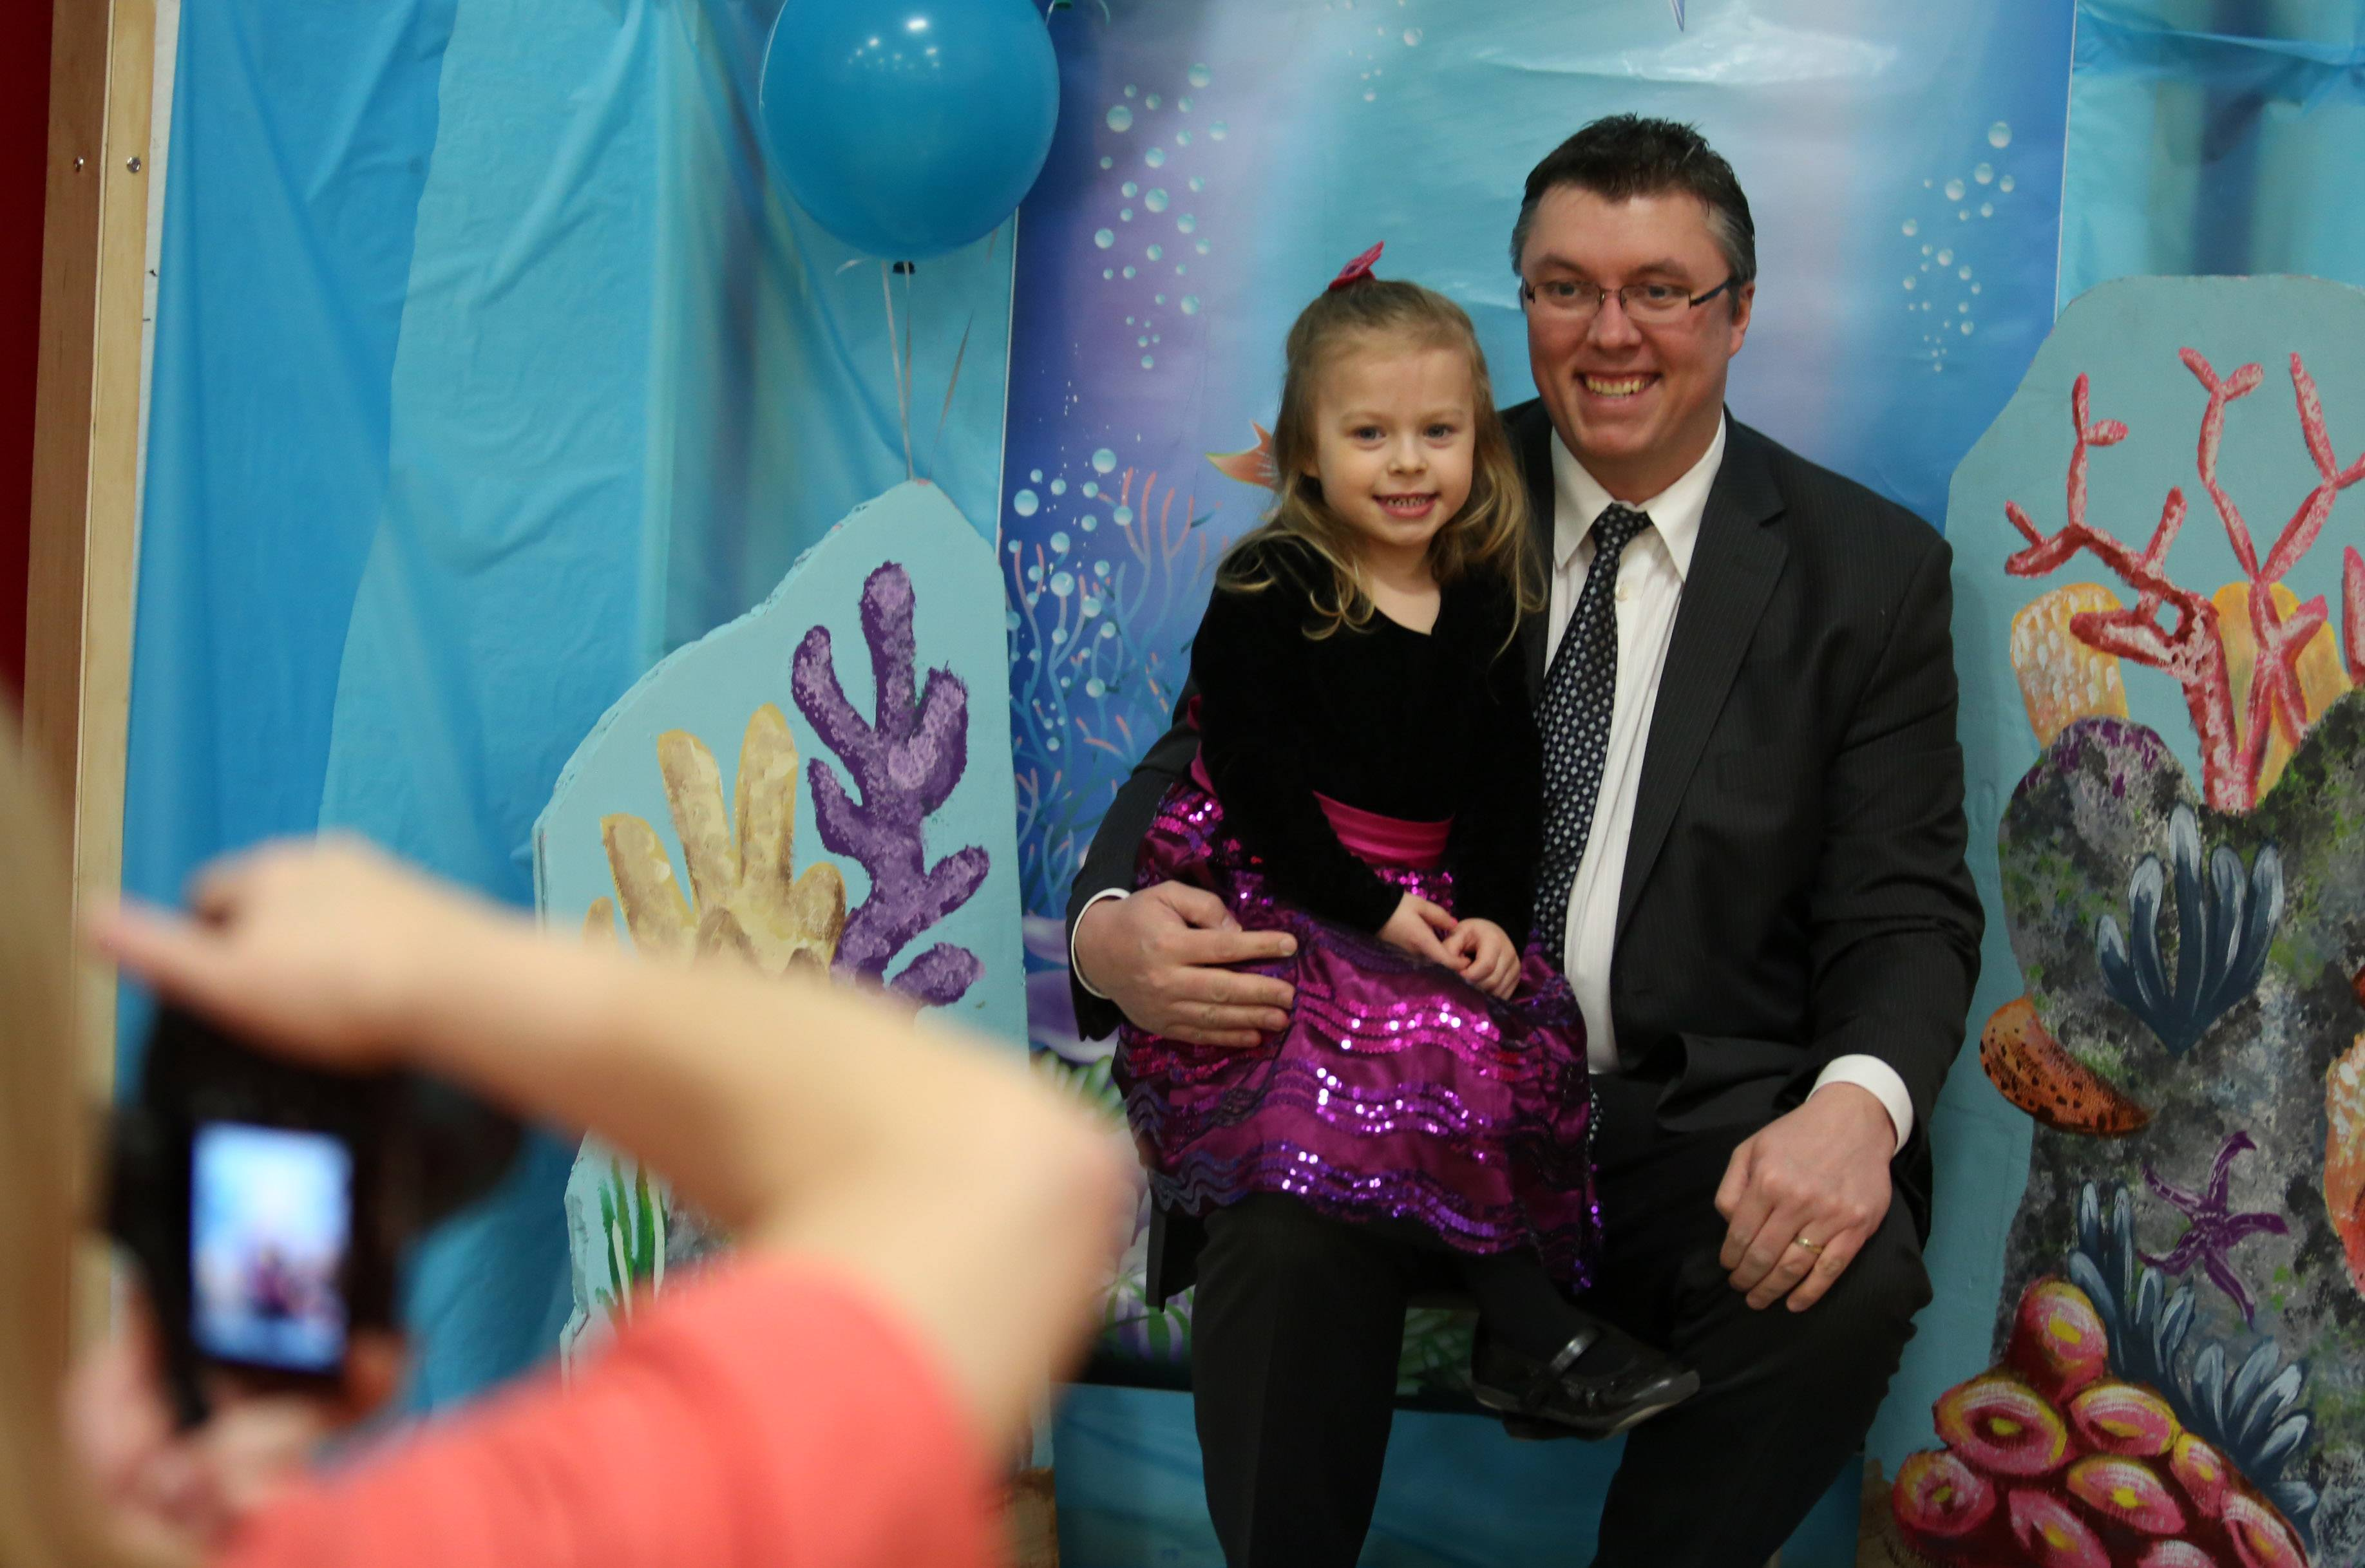 Martin Mularczyk of Schaumburg and his daughter Melania get their portrait taken at a dad and daughter dance at the Community Recreation Center on Saturday night in Schaumburg.